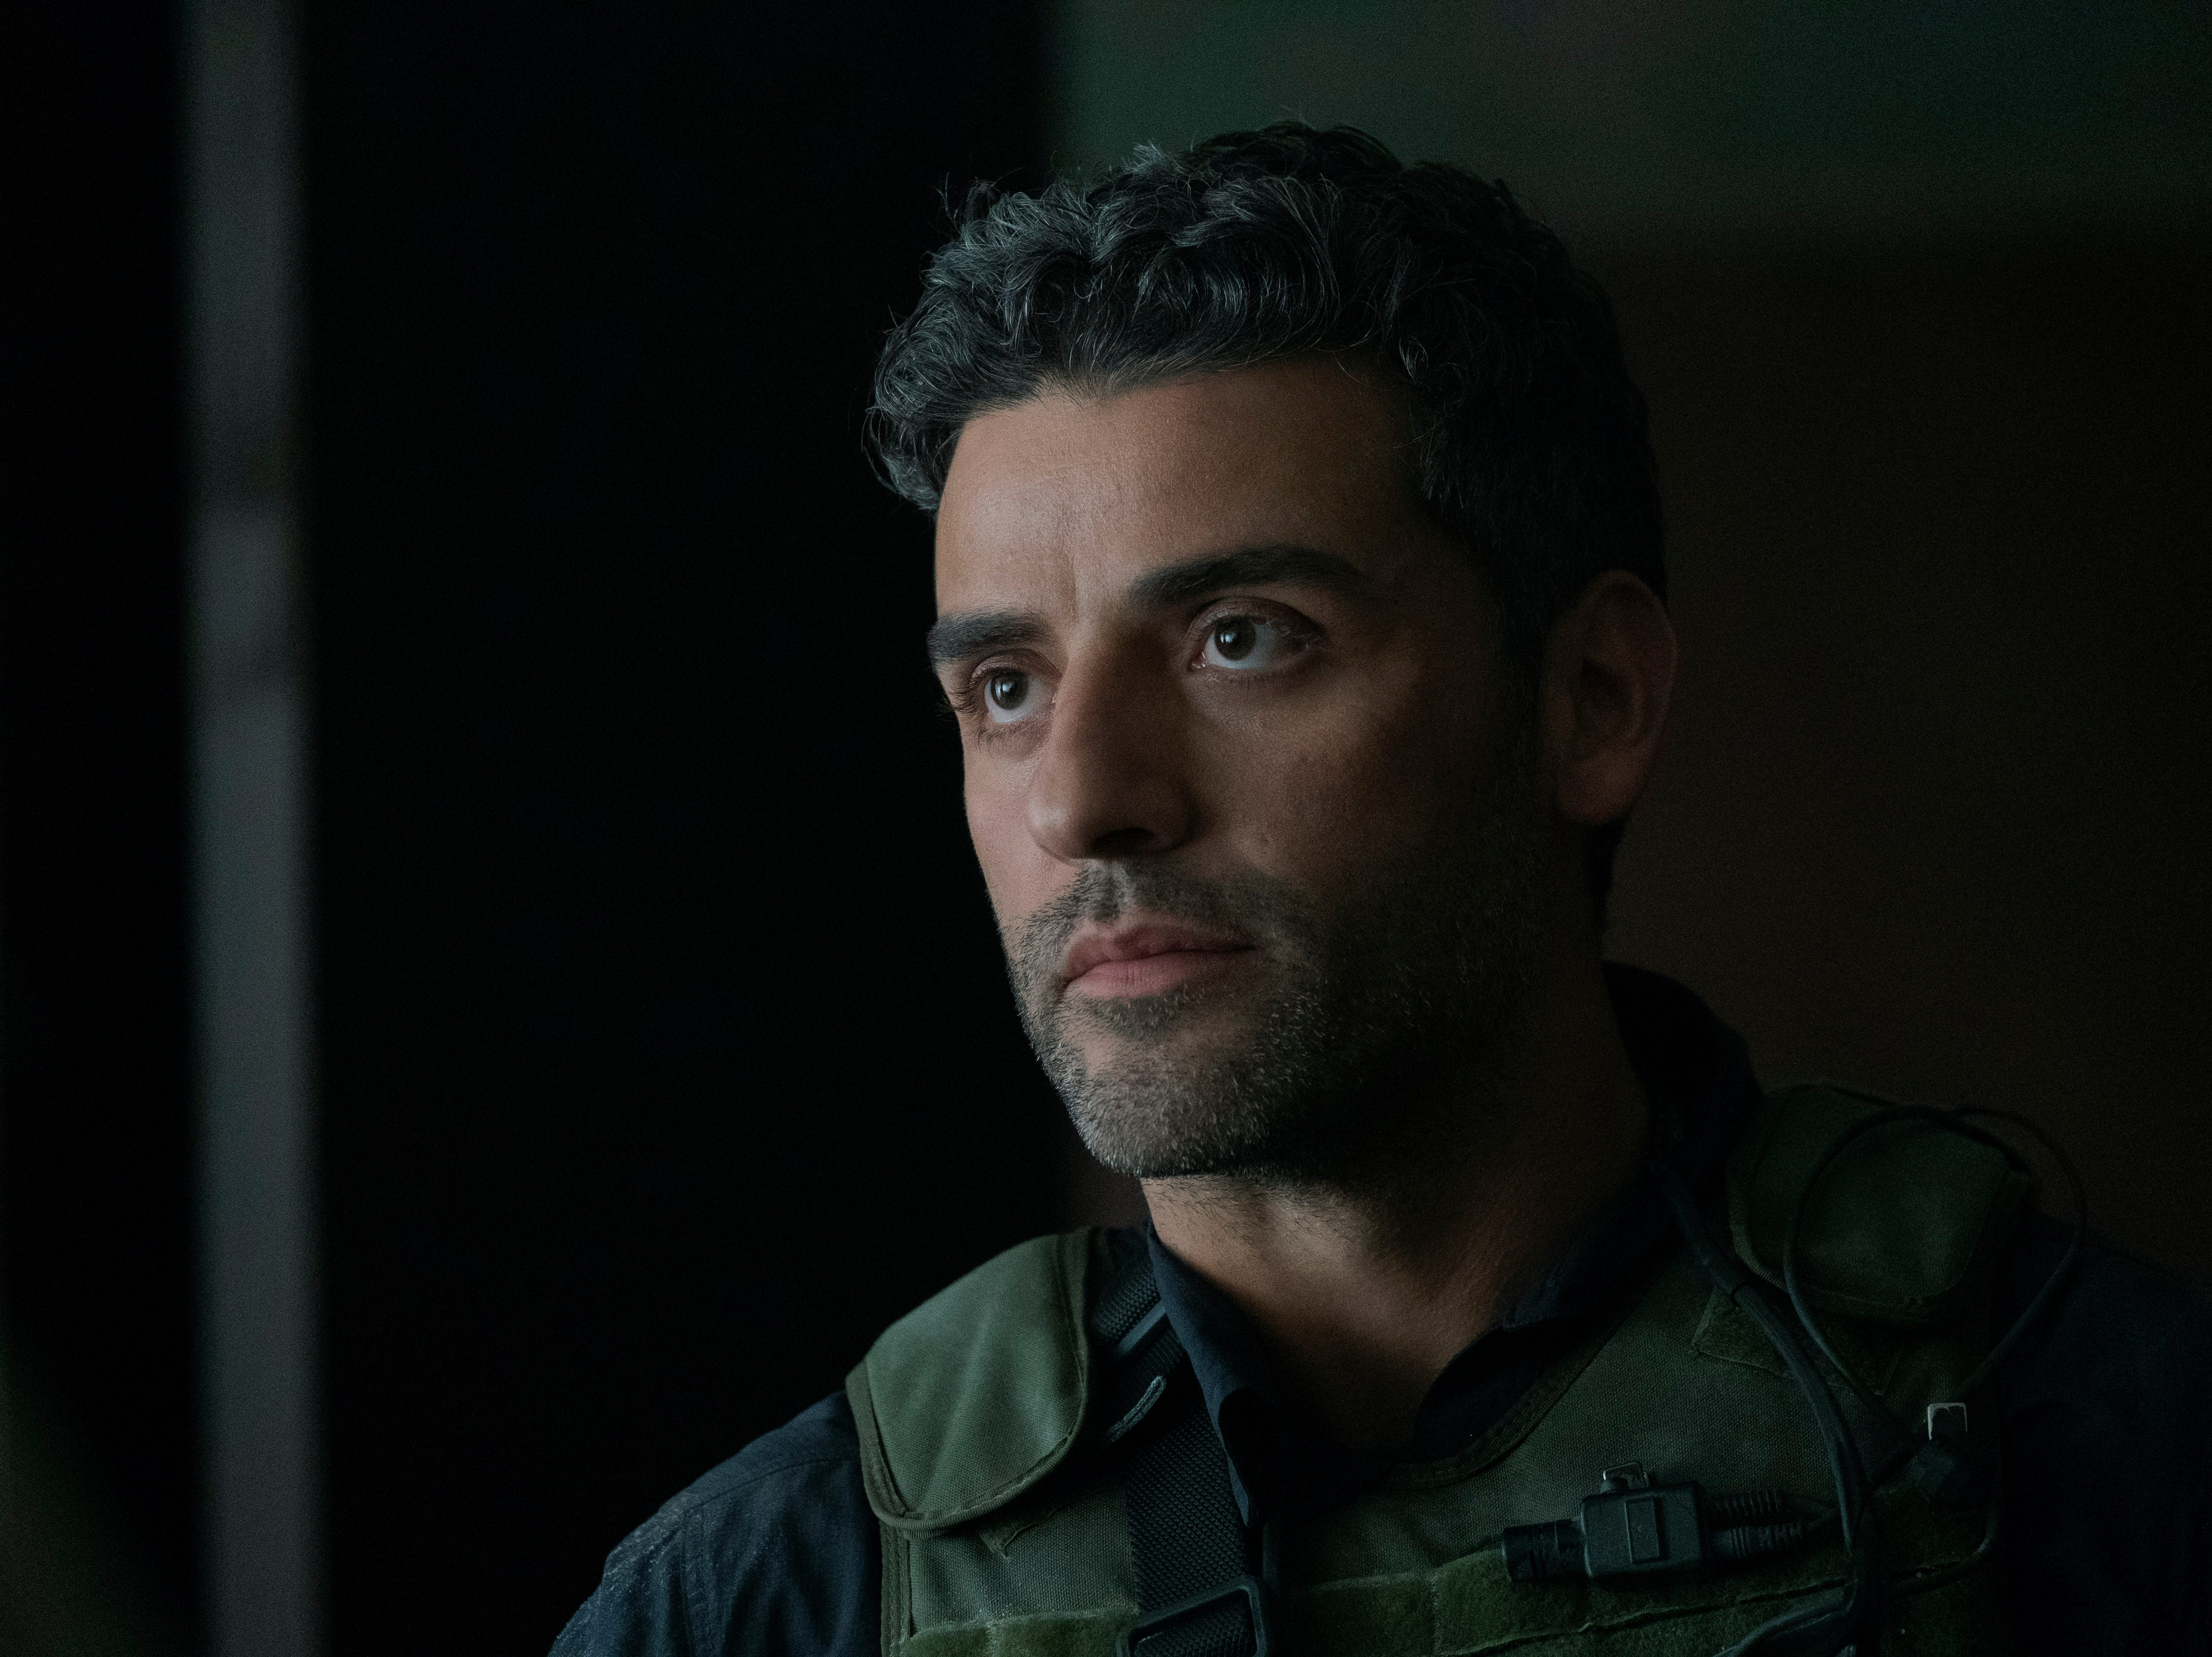 """Oscar Isaac stars in """"Triple Frontier."""" From the review: """"It's a movie that maybe tries to do too much, but it does enough of it well to keep you glued to the screen."""" (4 stars)"""